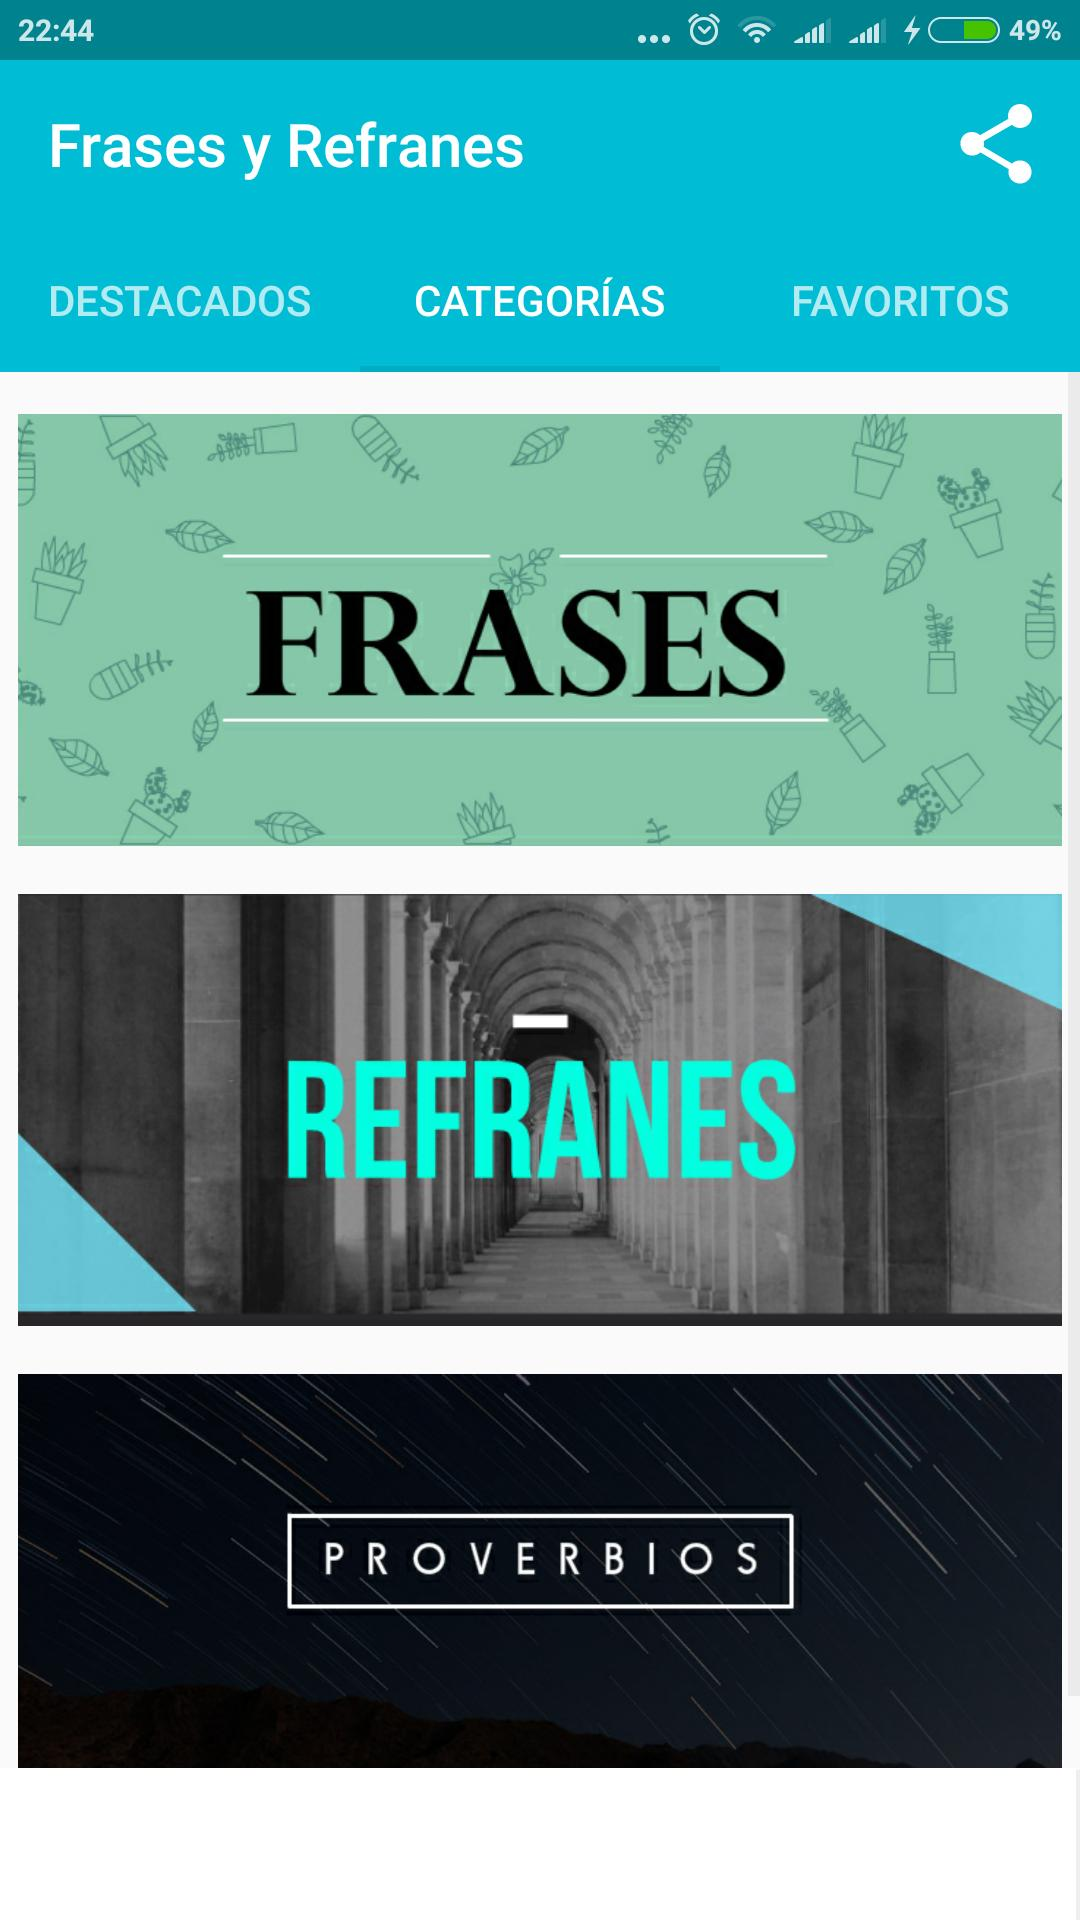 Frases Refranes Y Proverbios For Android Apk Download